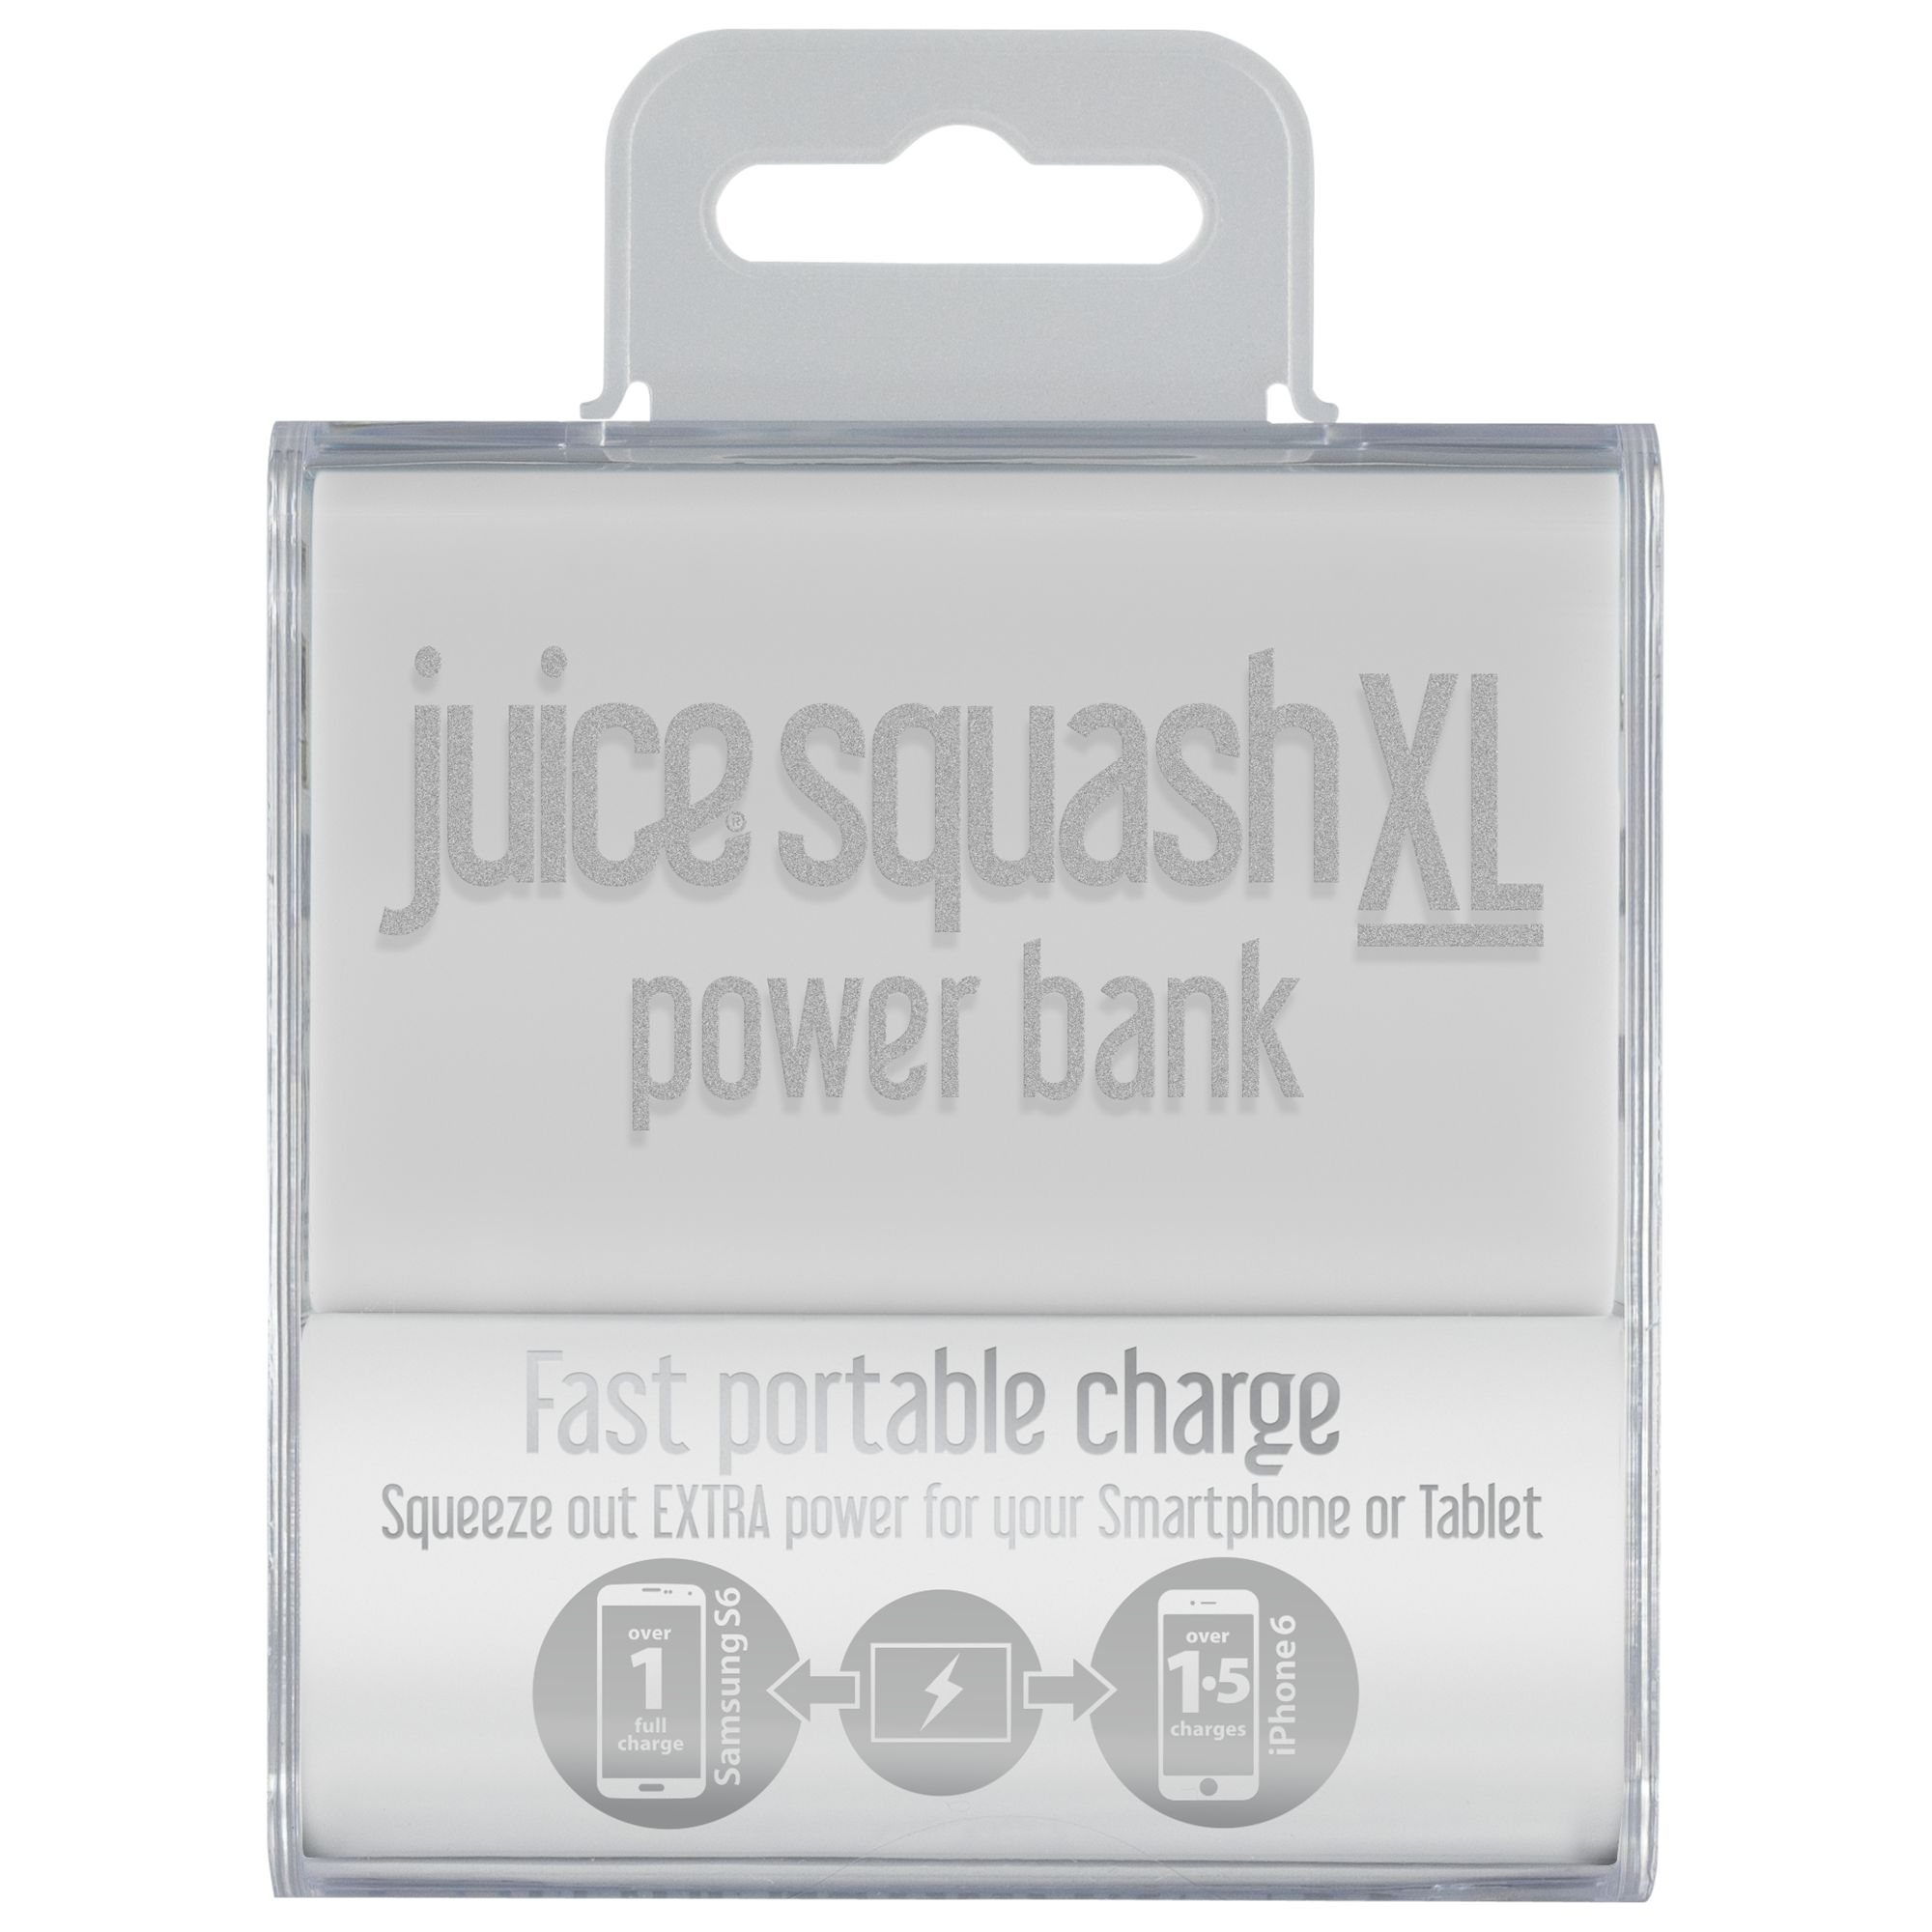 Juice Juice Squash XL Power Bank Portable Charger for iPhone 6/Samsung 5G